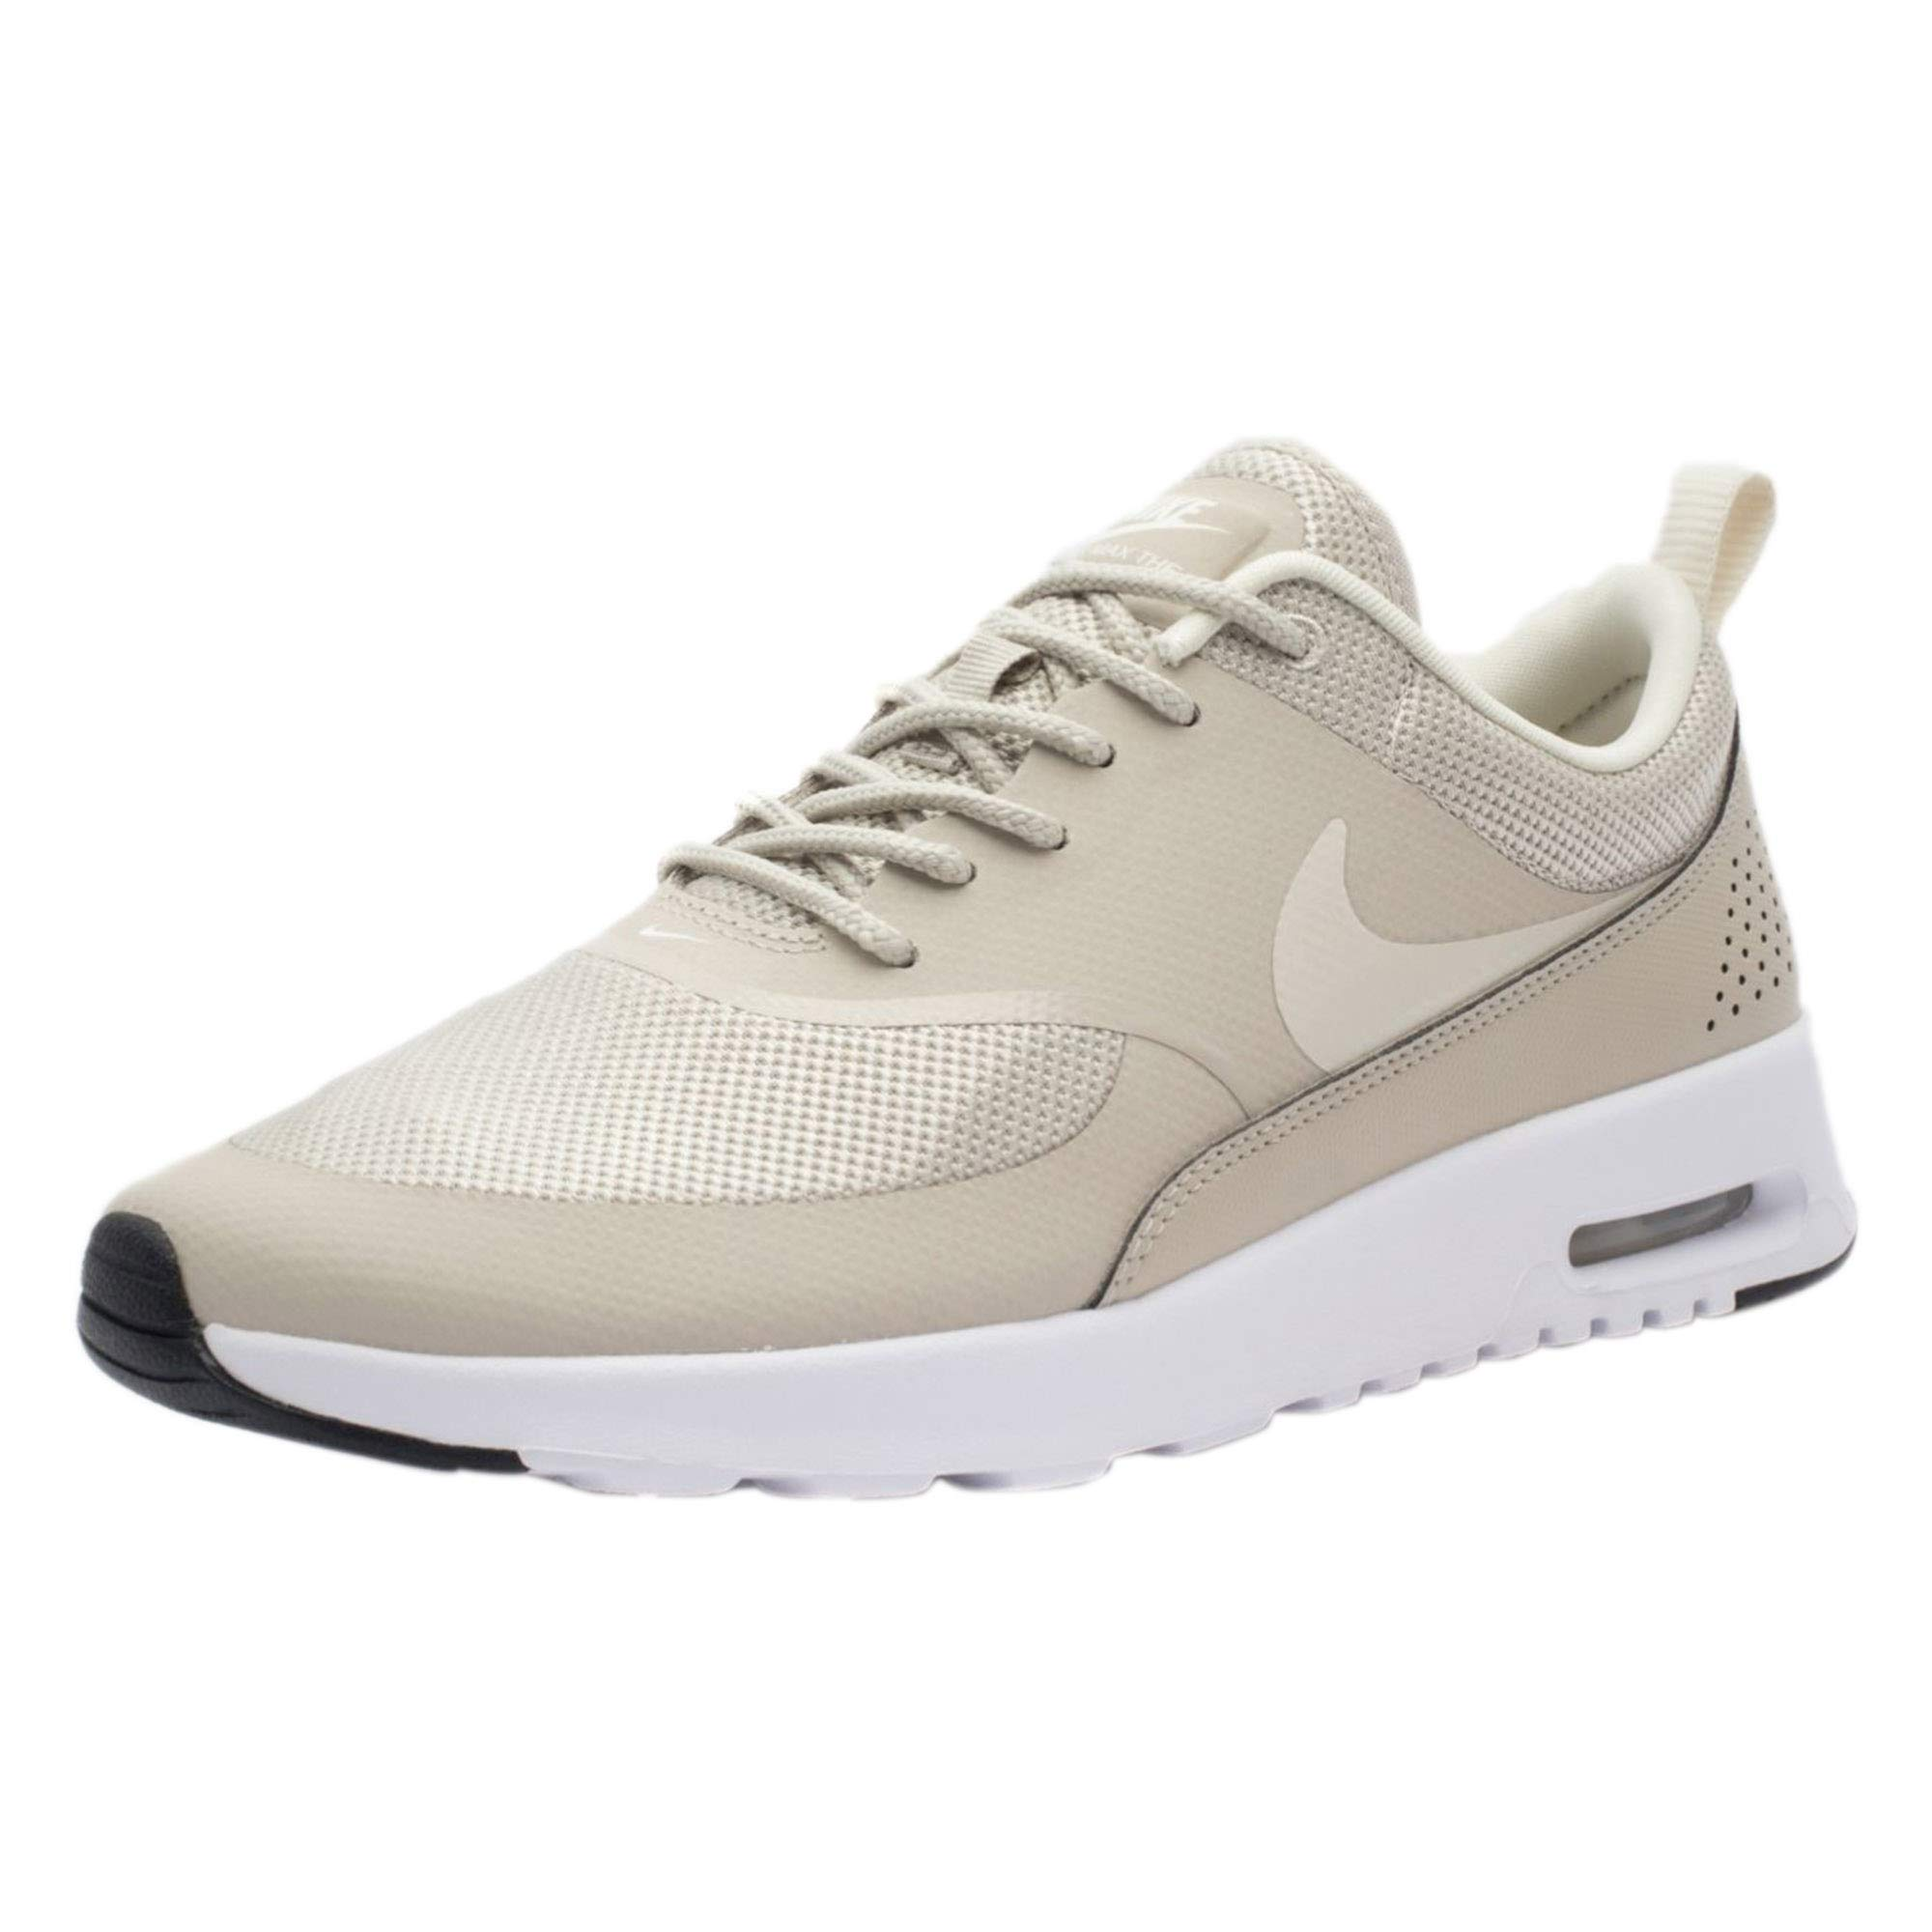 1c436a0d47 Galleon - Nike Air Max Thea Womens Style : 599409-205 Size : 9.5 M US